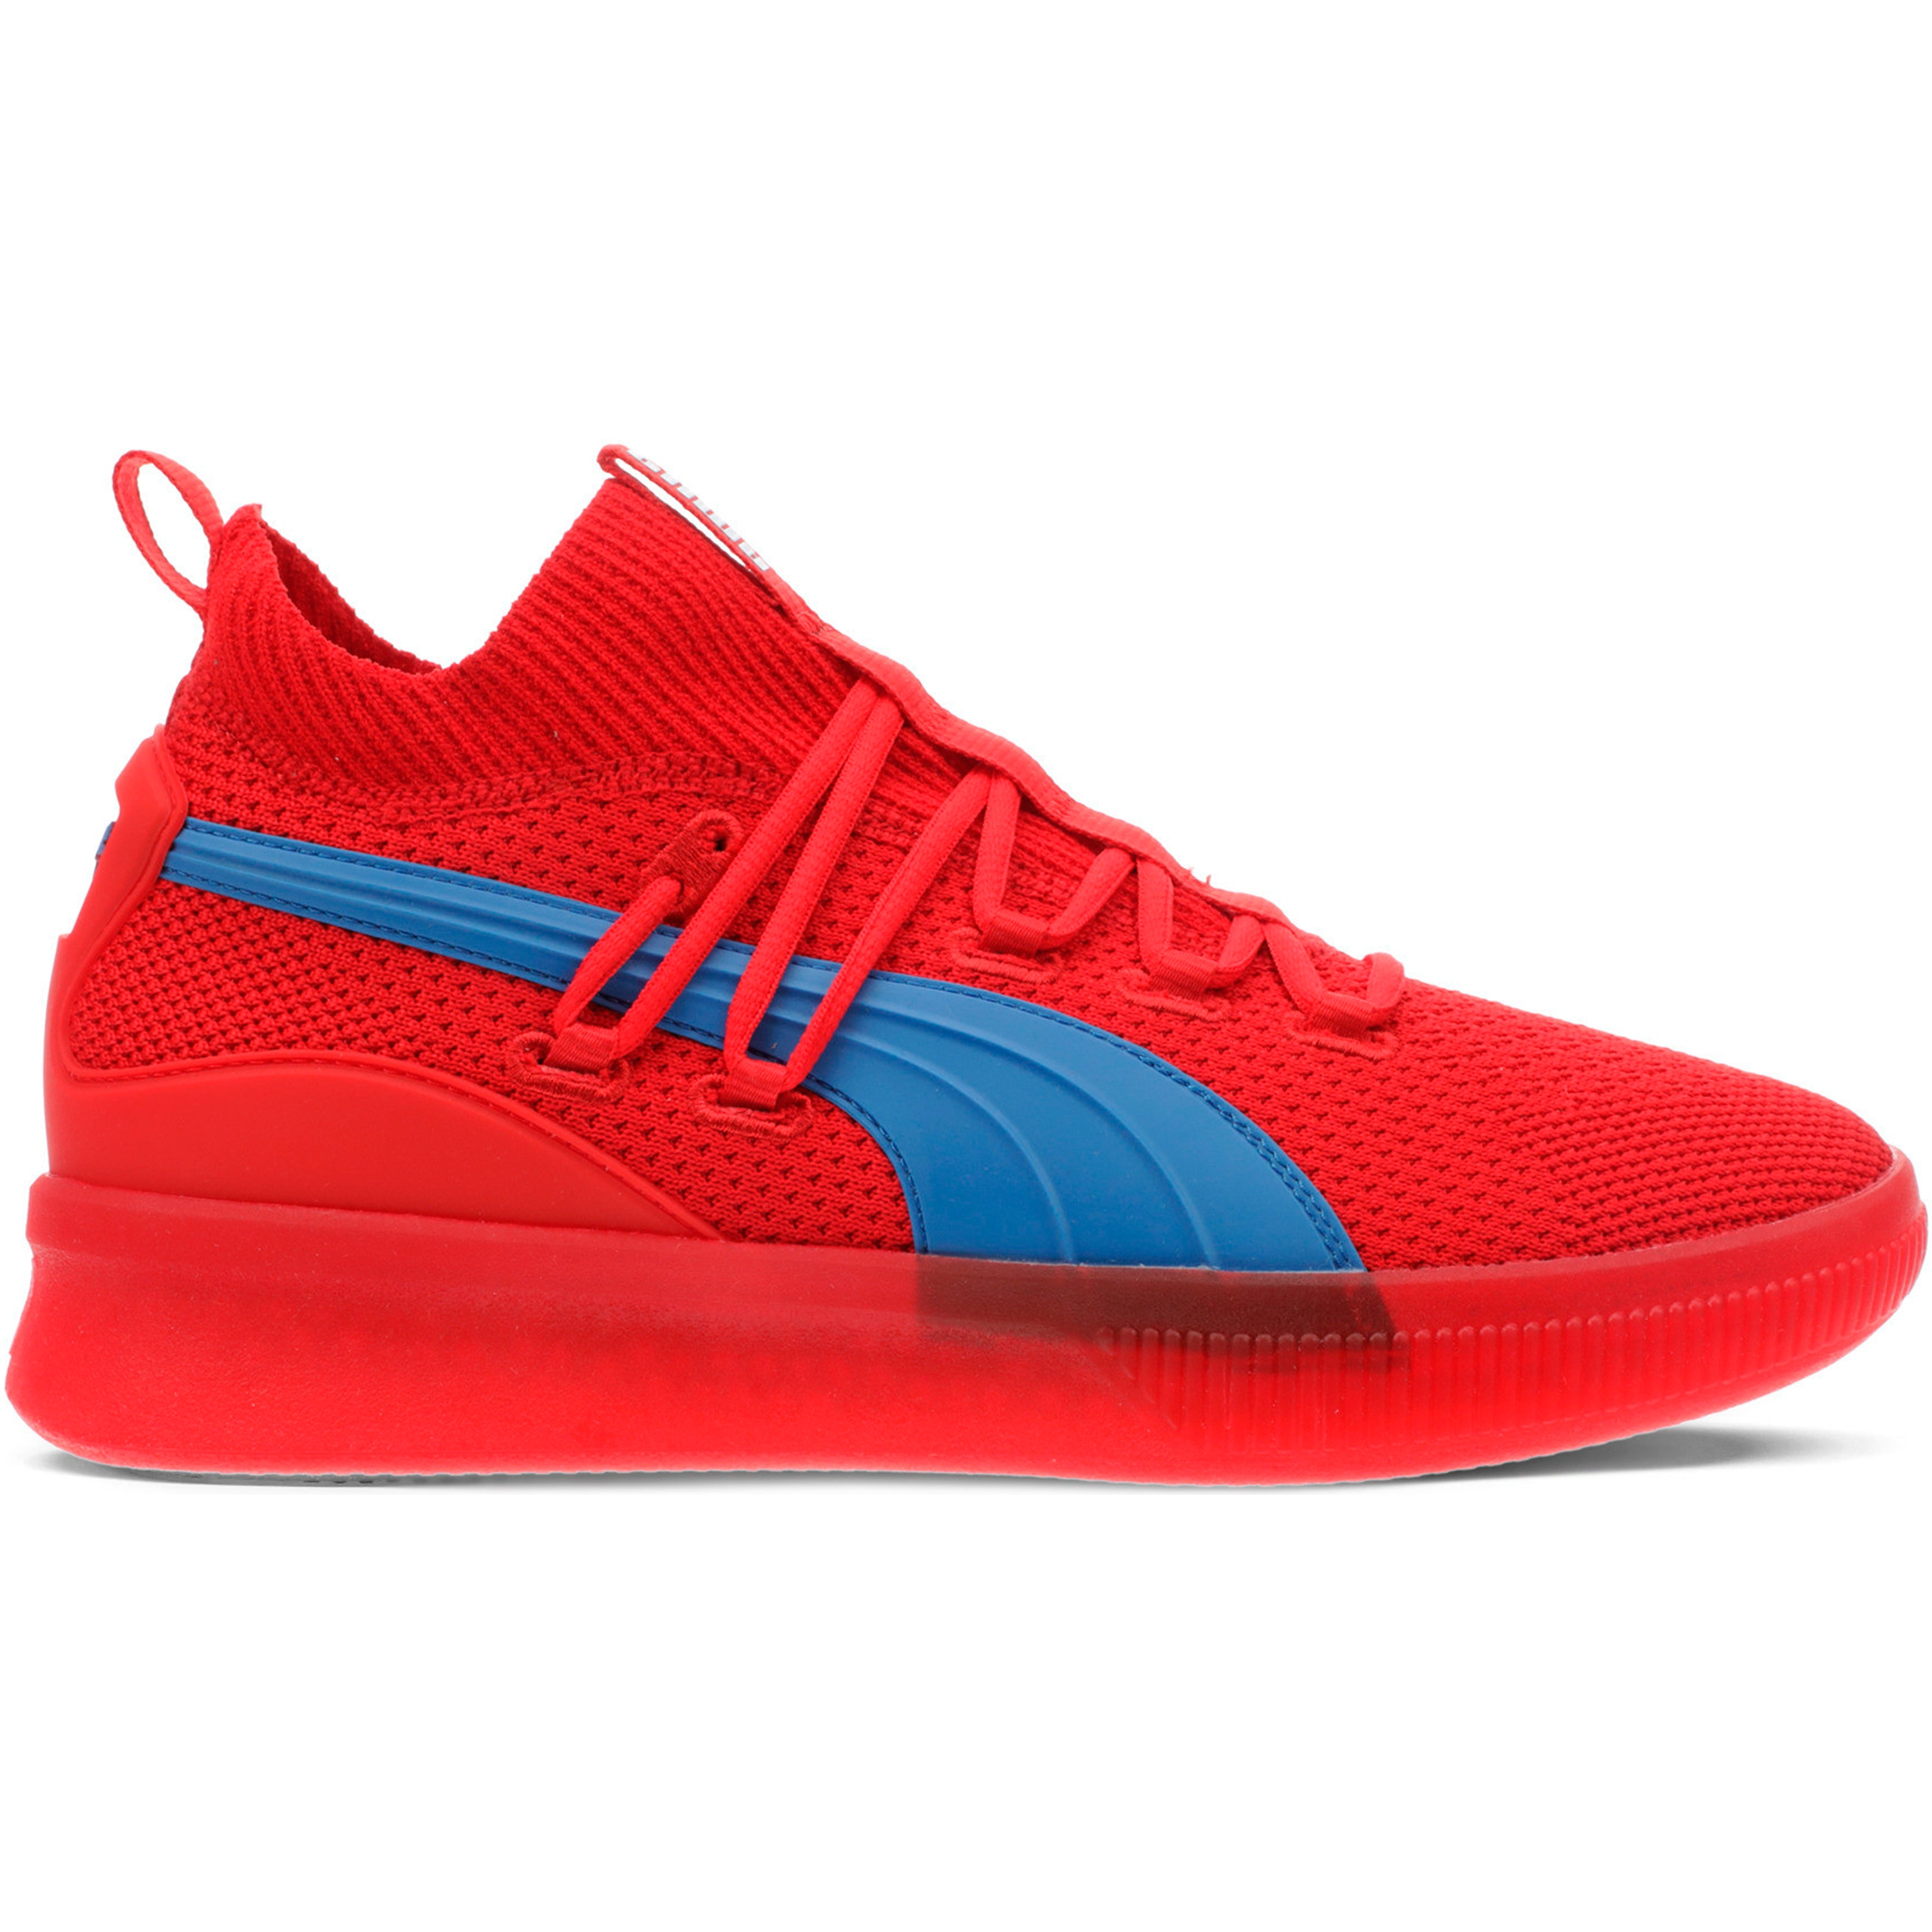 Puma Clyde Court City Pack Los Angeles Clippers (191712-02)